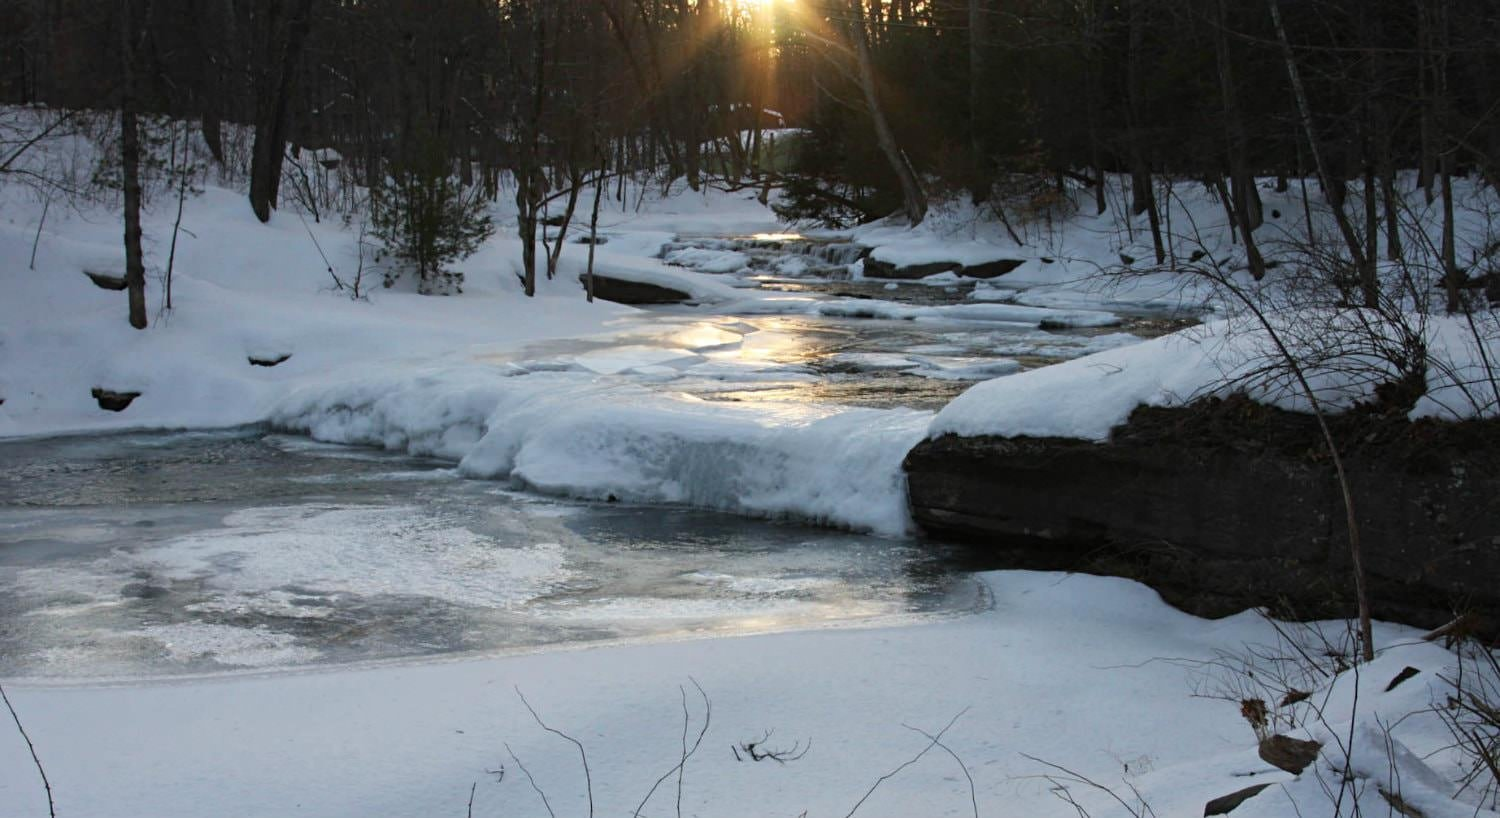 White snow and ice covered stream and woods with a golden setting sun in the distance